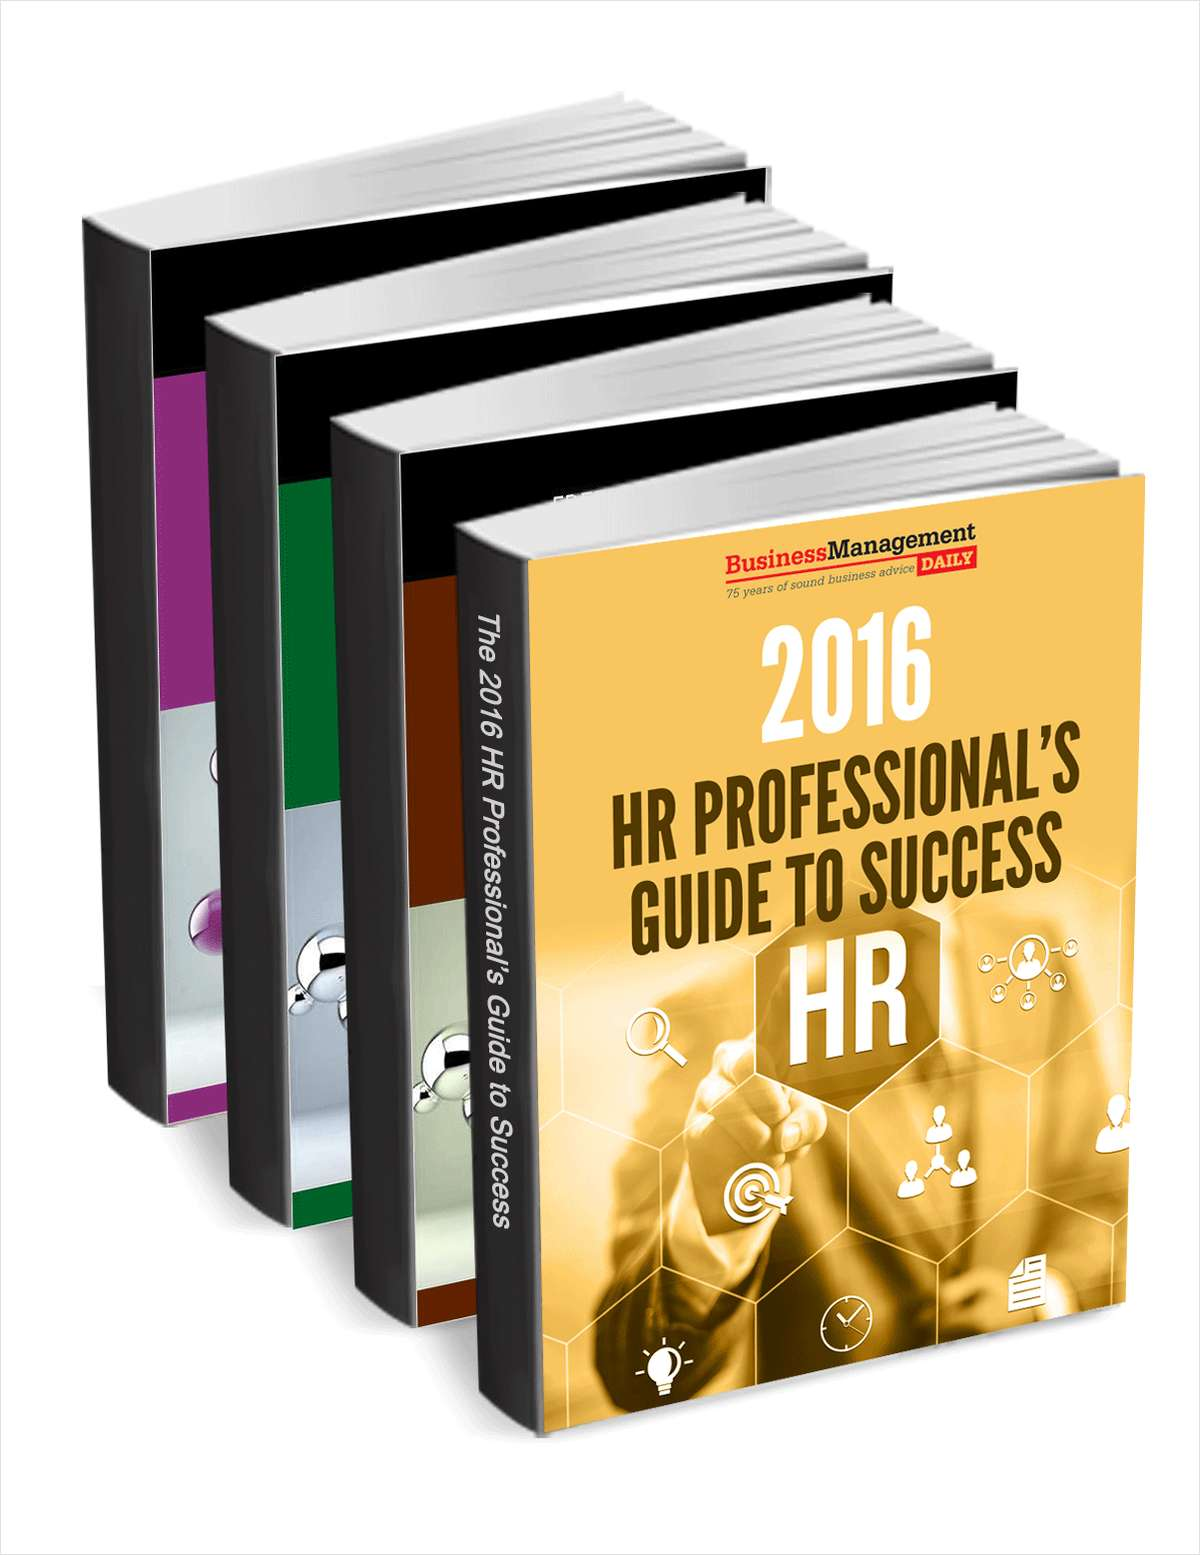 The 2016 HR Professional's Guide to Success